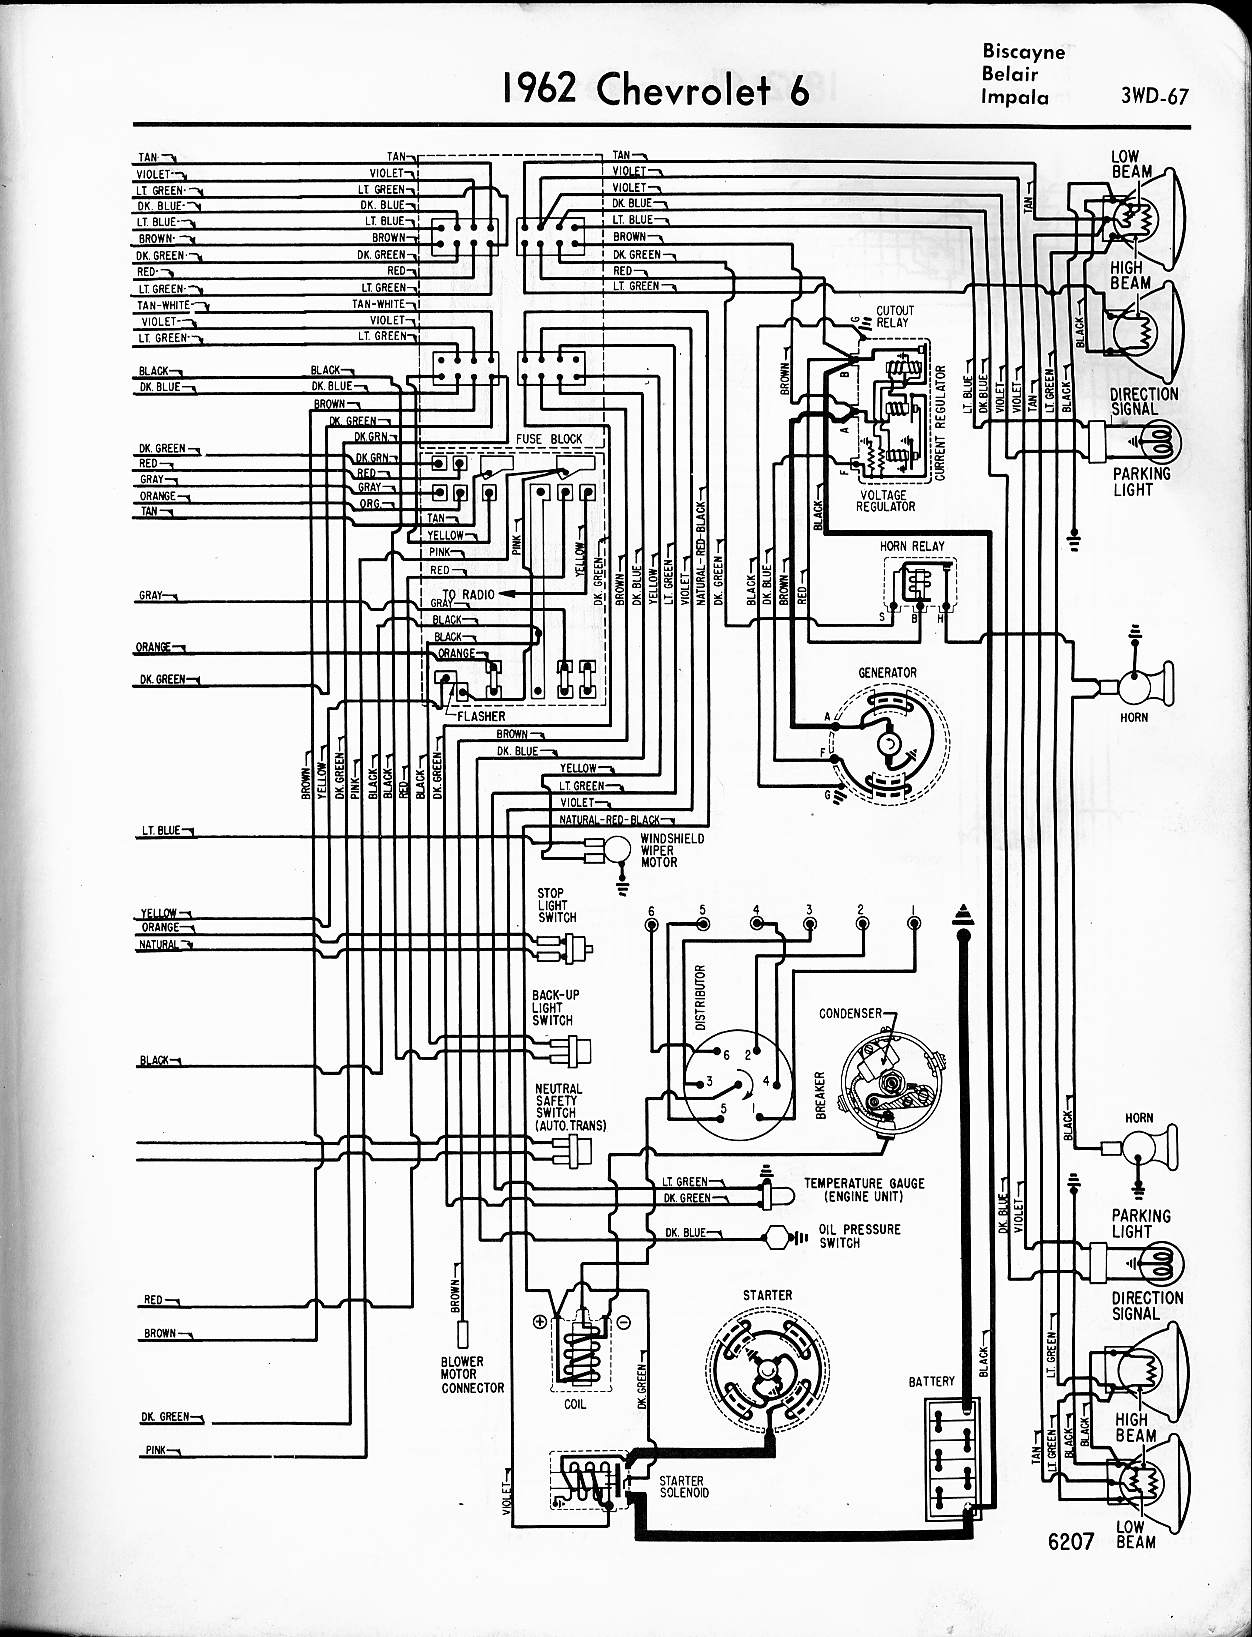 1963 Chevy Pickup Wiring Diagram